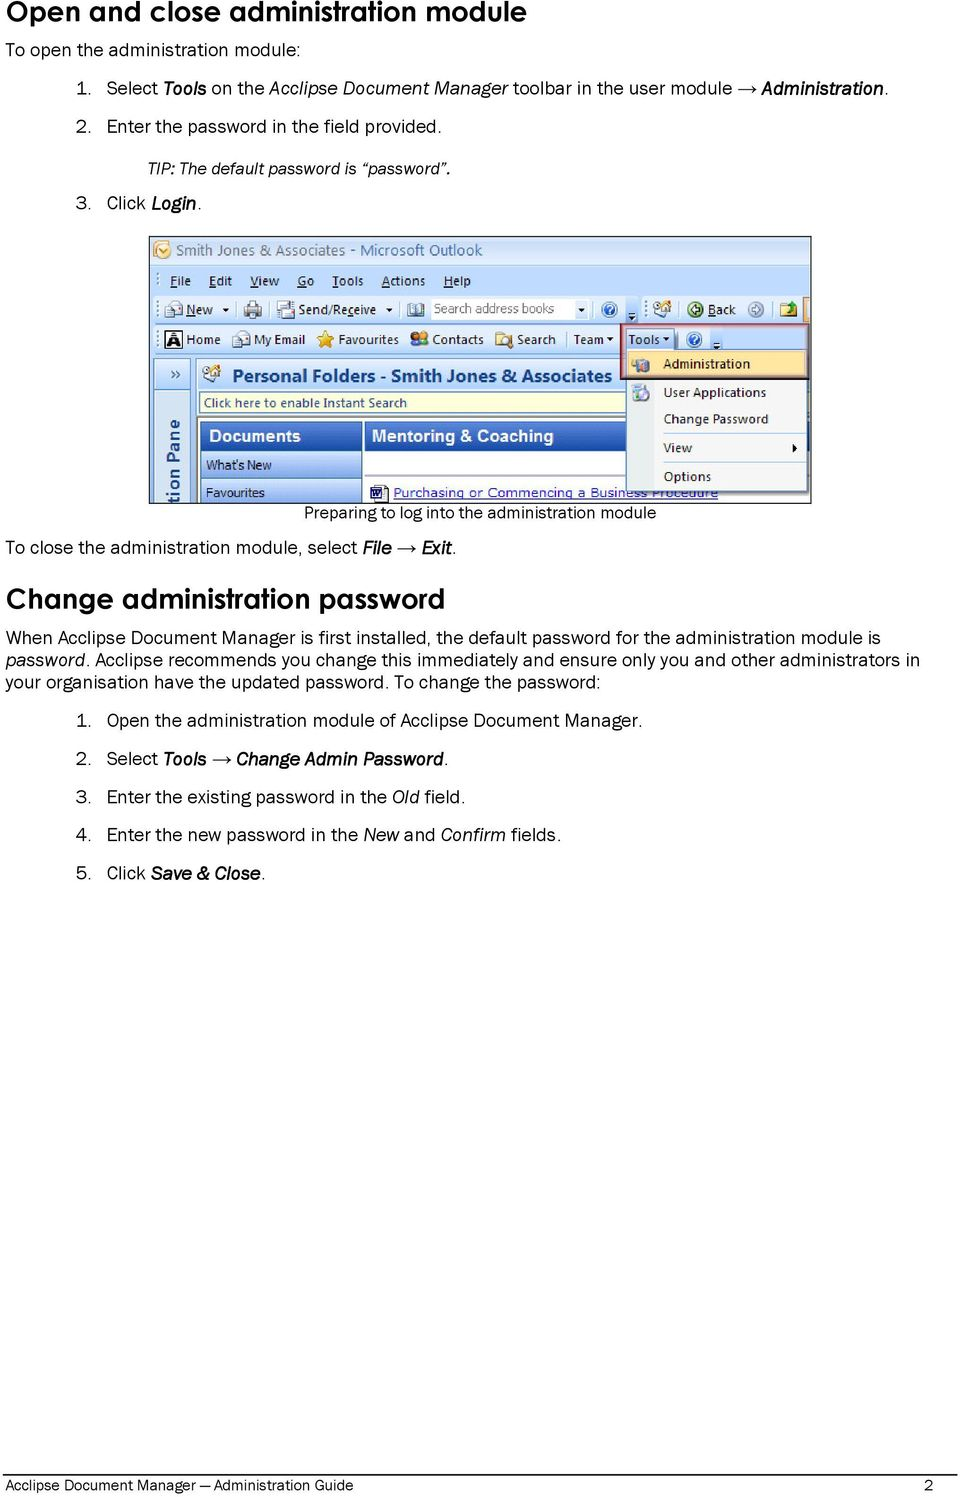 Change administration password Preparing to log into the administration module When Acclipse Document Manager is first installed, the default password for the administration module is password.